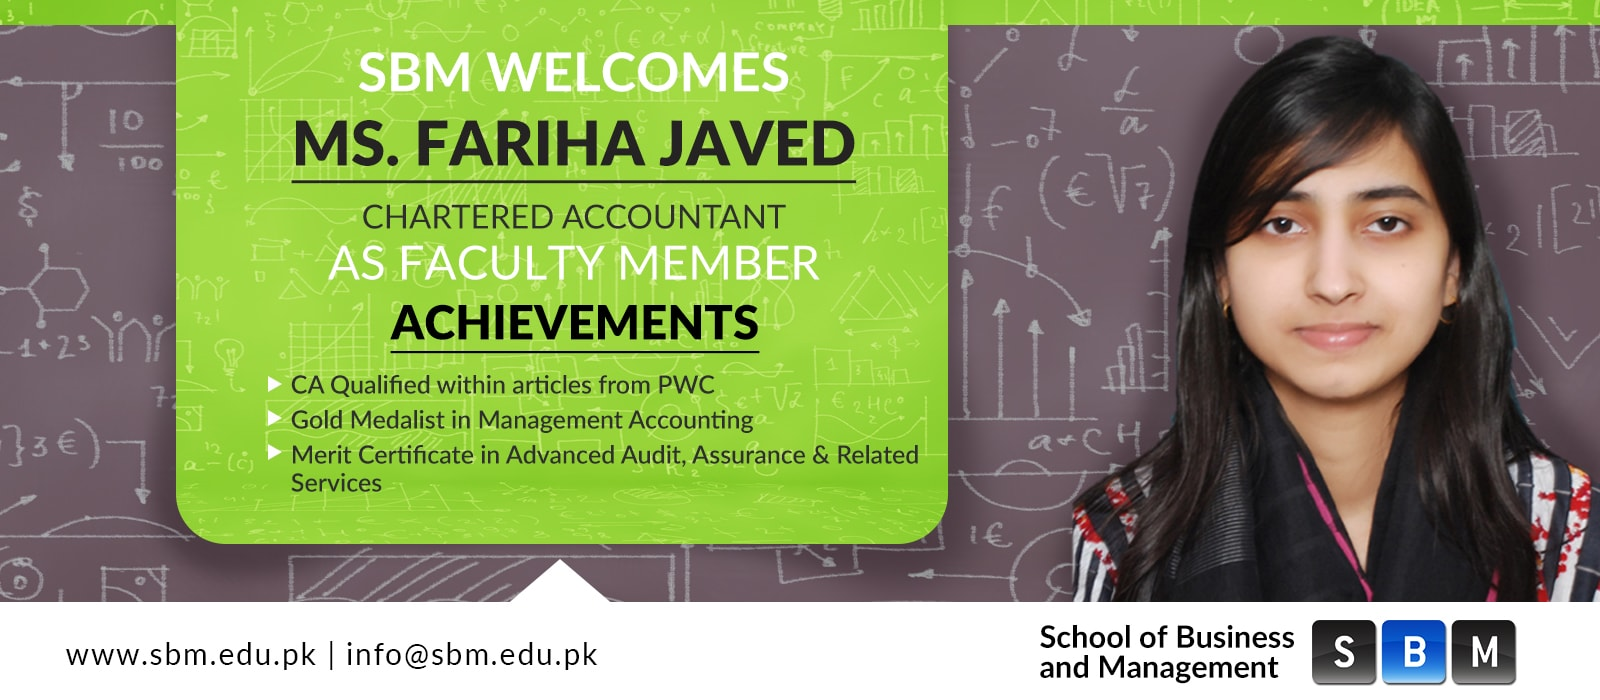 Ms. Fariha Javed has joined SBM as Faculty Member